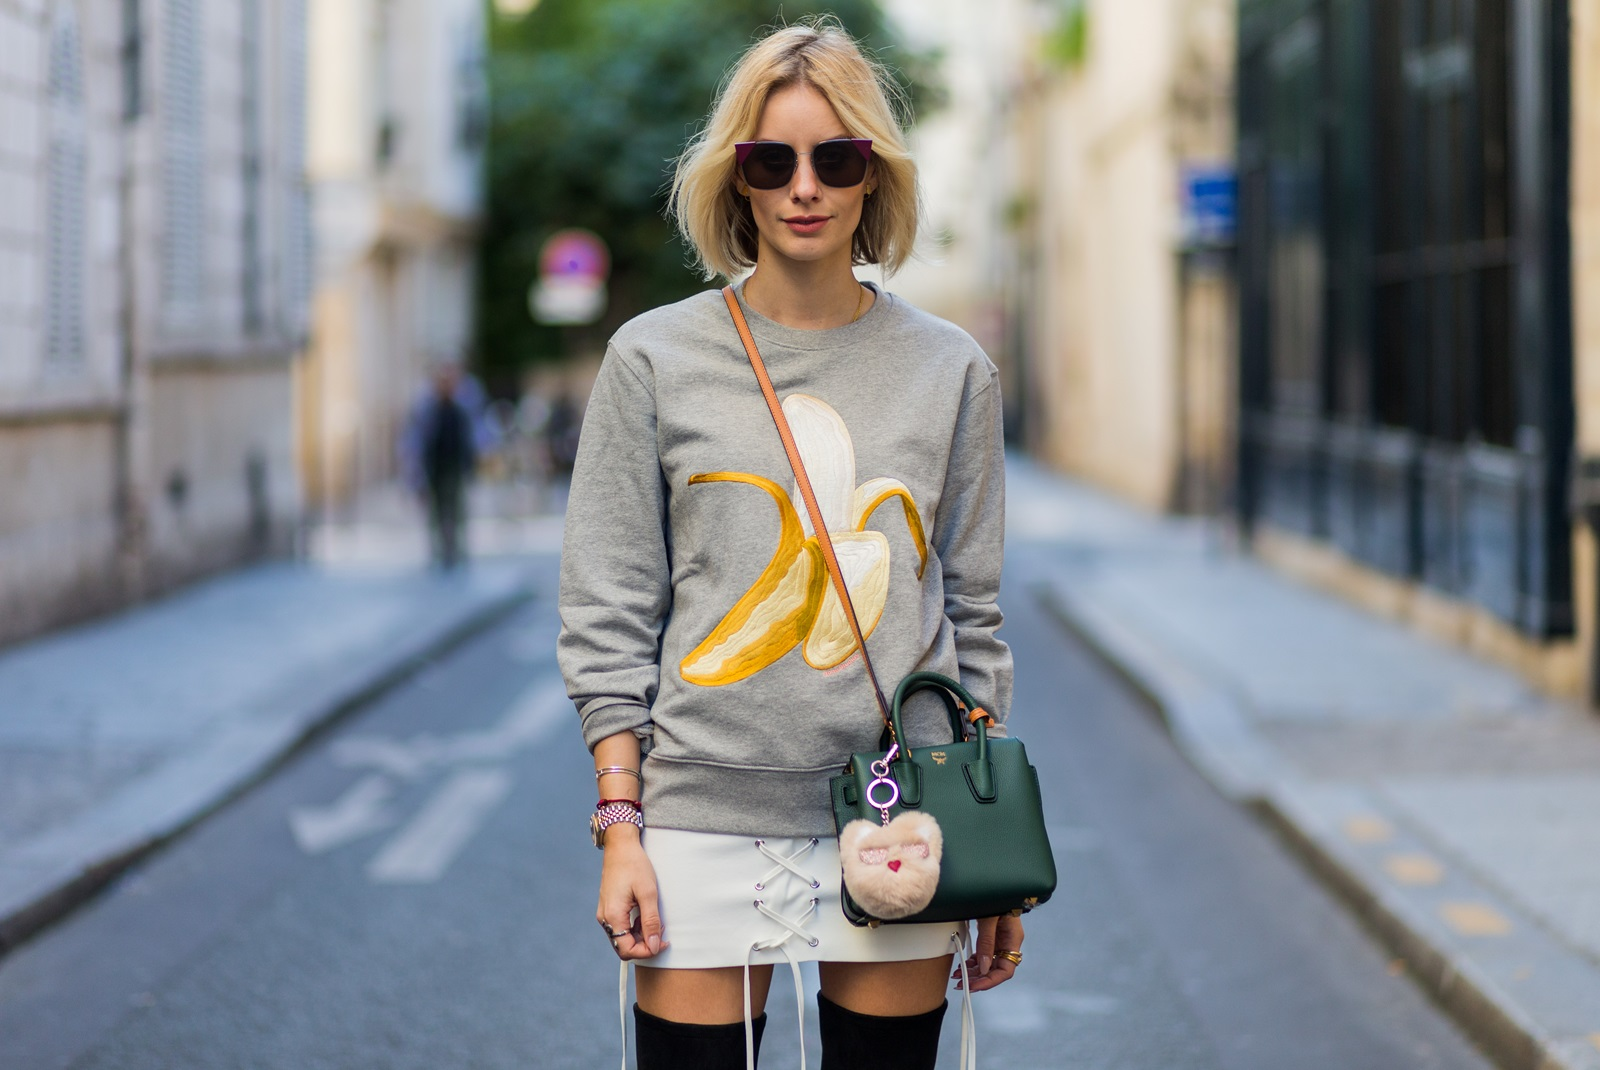 PARIS, FRANCE - OCTOBER 03: German fashion blogger Lisa Hahnbueck (@lisarvd) wearing Carly Banana Sweatshirt Acne Studios, Isla Skirt, Boots: Overknee Boots Alllegs Stuart Weitzman, Sunglasses : Fendi Bag: MCM Milla Mini outside Hermes on October 3, 2016 in Paris, France. (Photo by Christian Vierig/Getty Images) *** Local Caption *** Lisa Hahnbueck